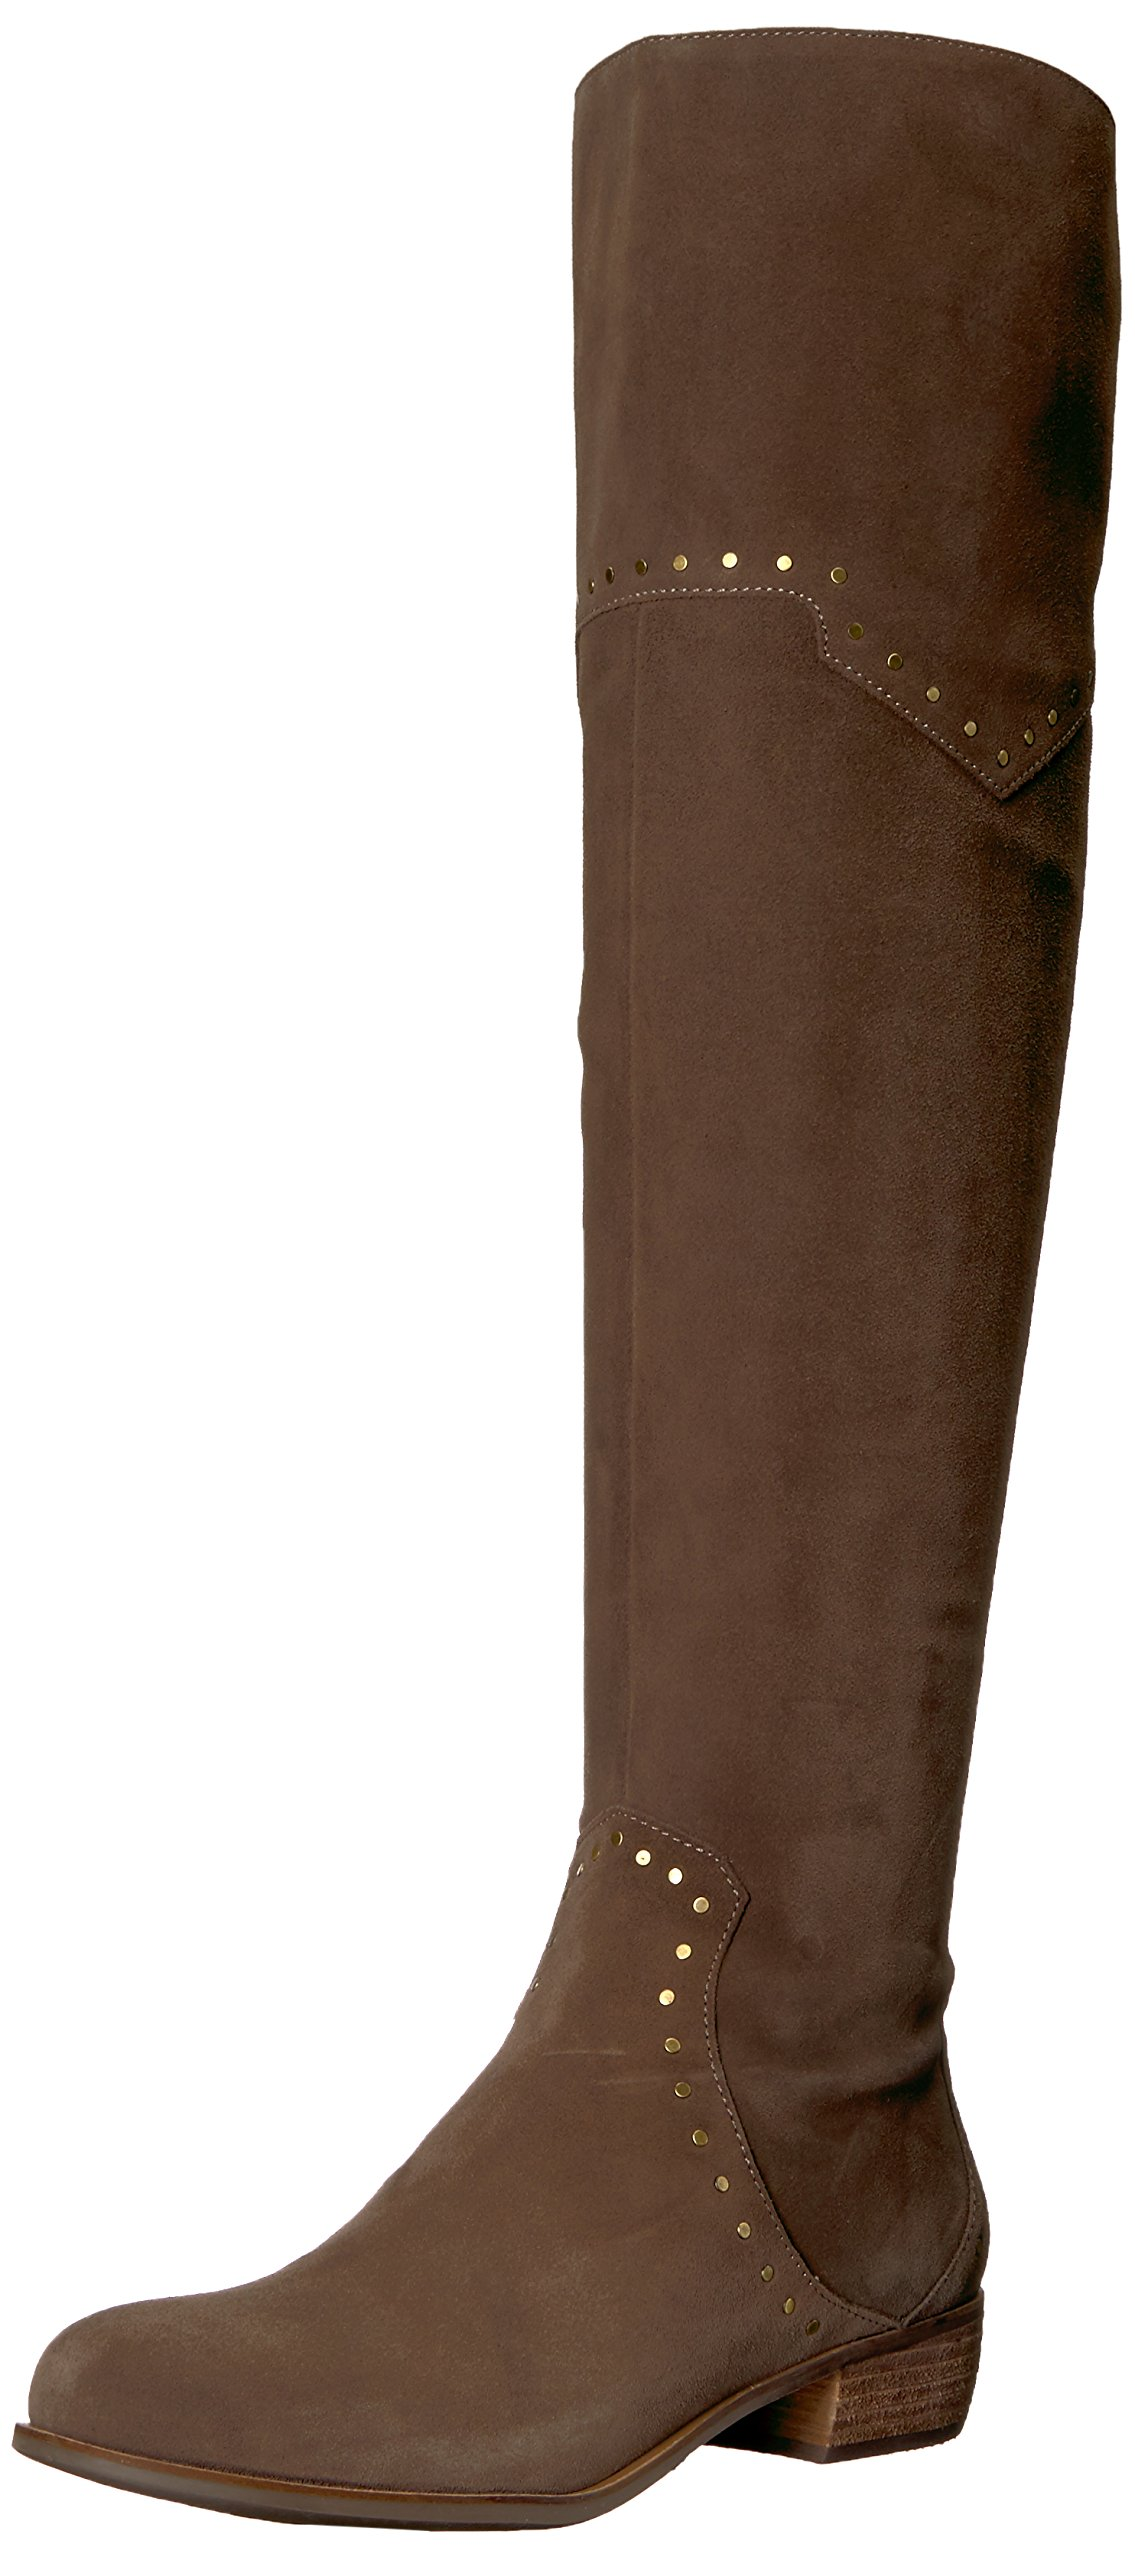 Aerosoles Women's West Side Over The Knee Boot, Taupe Suede, 8.5 M US